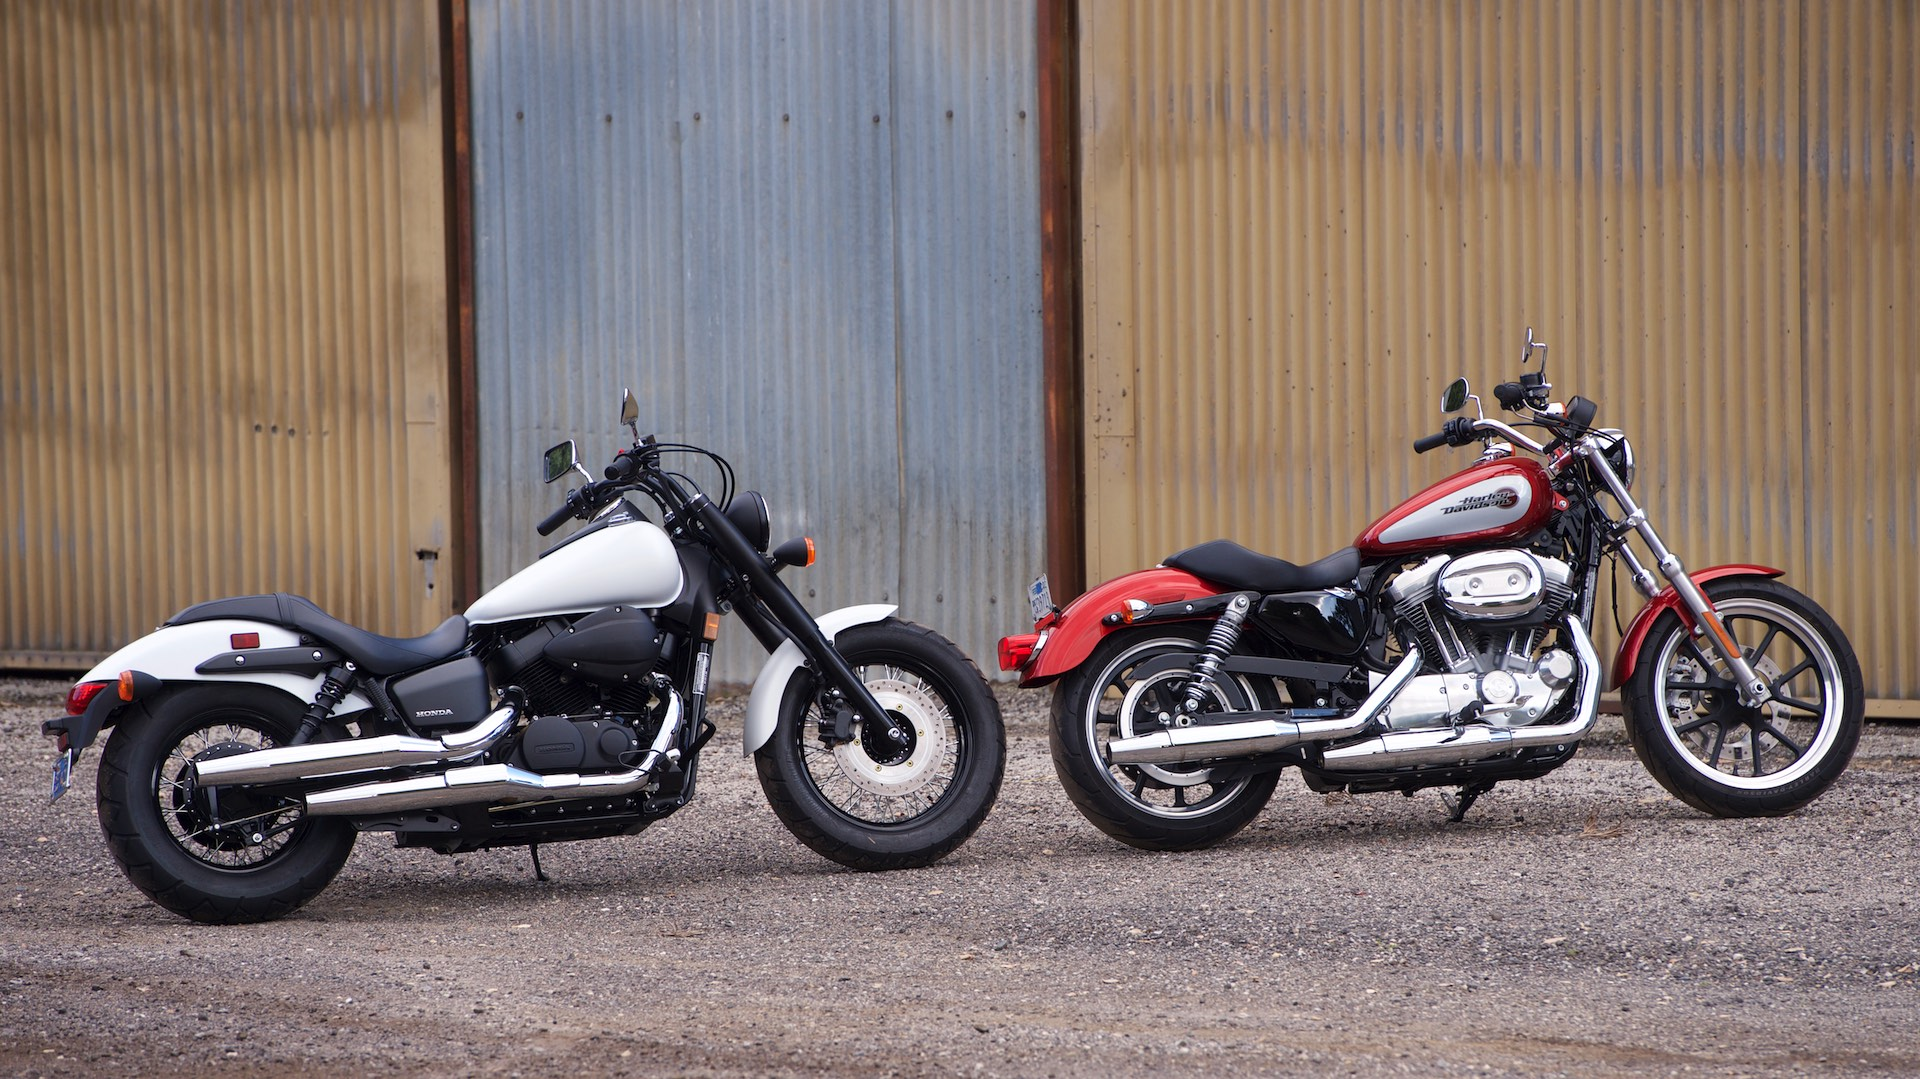 2019 Harley Superlow vs Honda Phantom Shadow